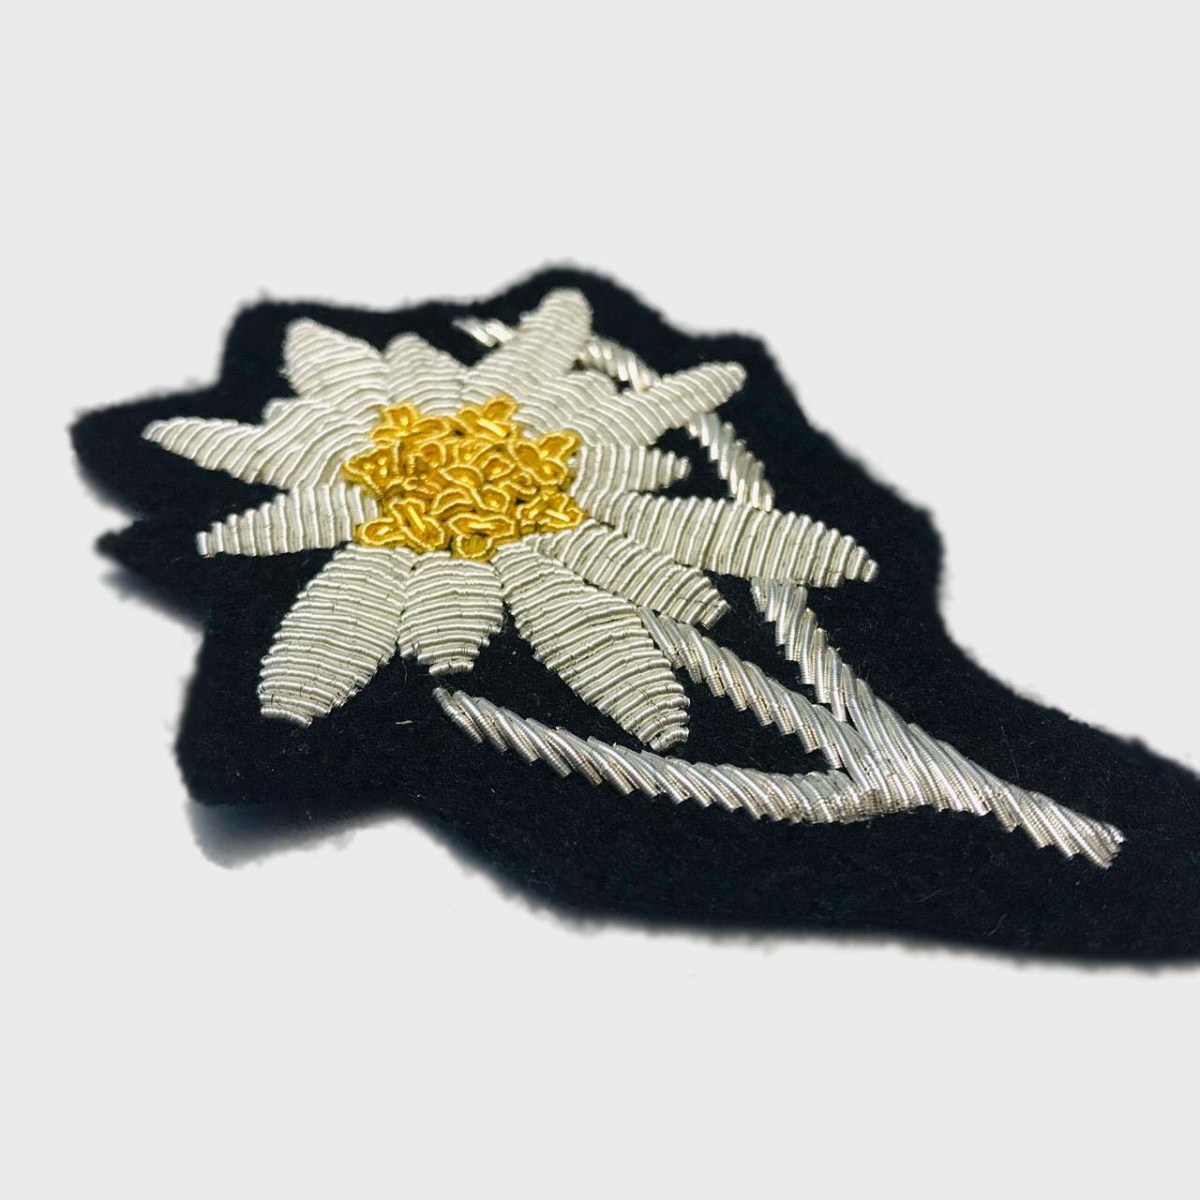 Edelweiss Flower Bullion Embroidered Badge , Sew-on Applique Patch - Edelweiss EmbroideredPatch Size # 3inches Sew-on backing Silverbullion wires embroidered on felt  3